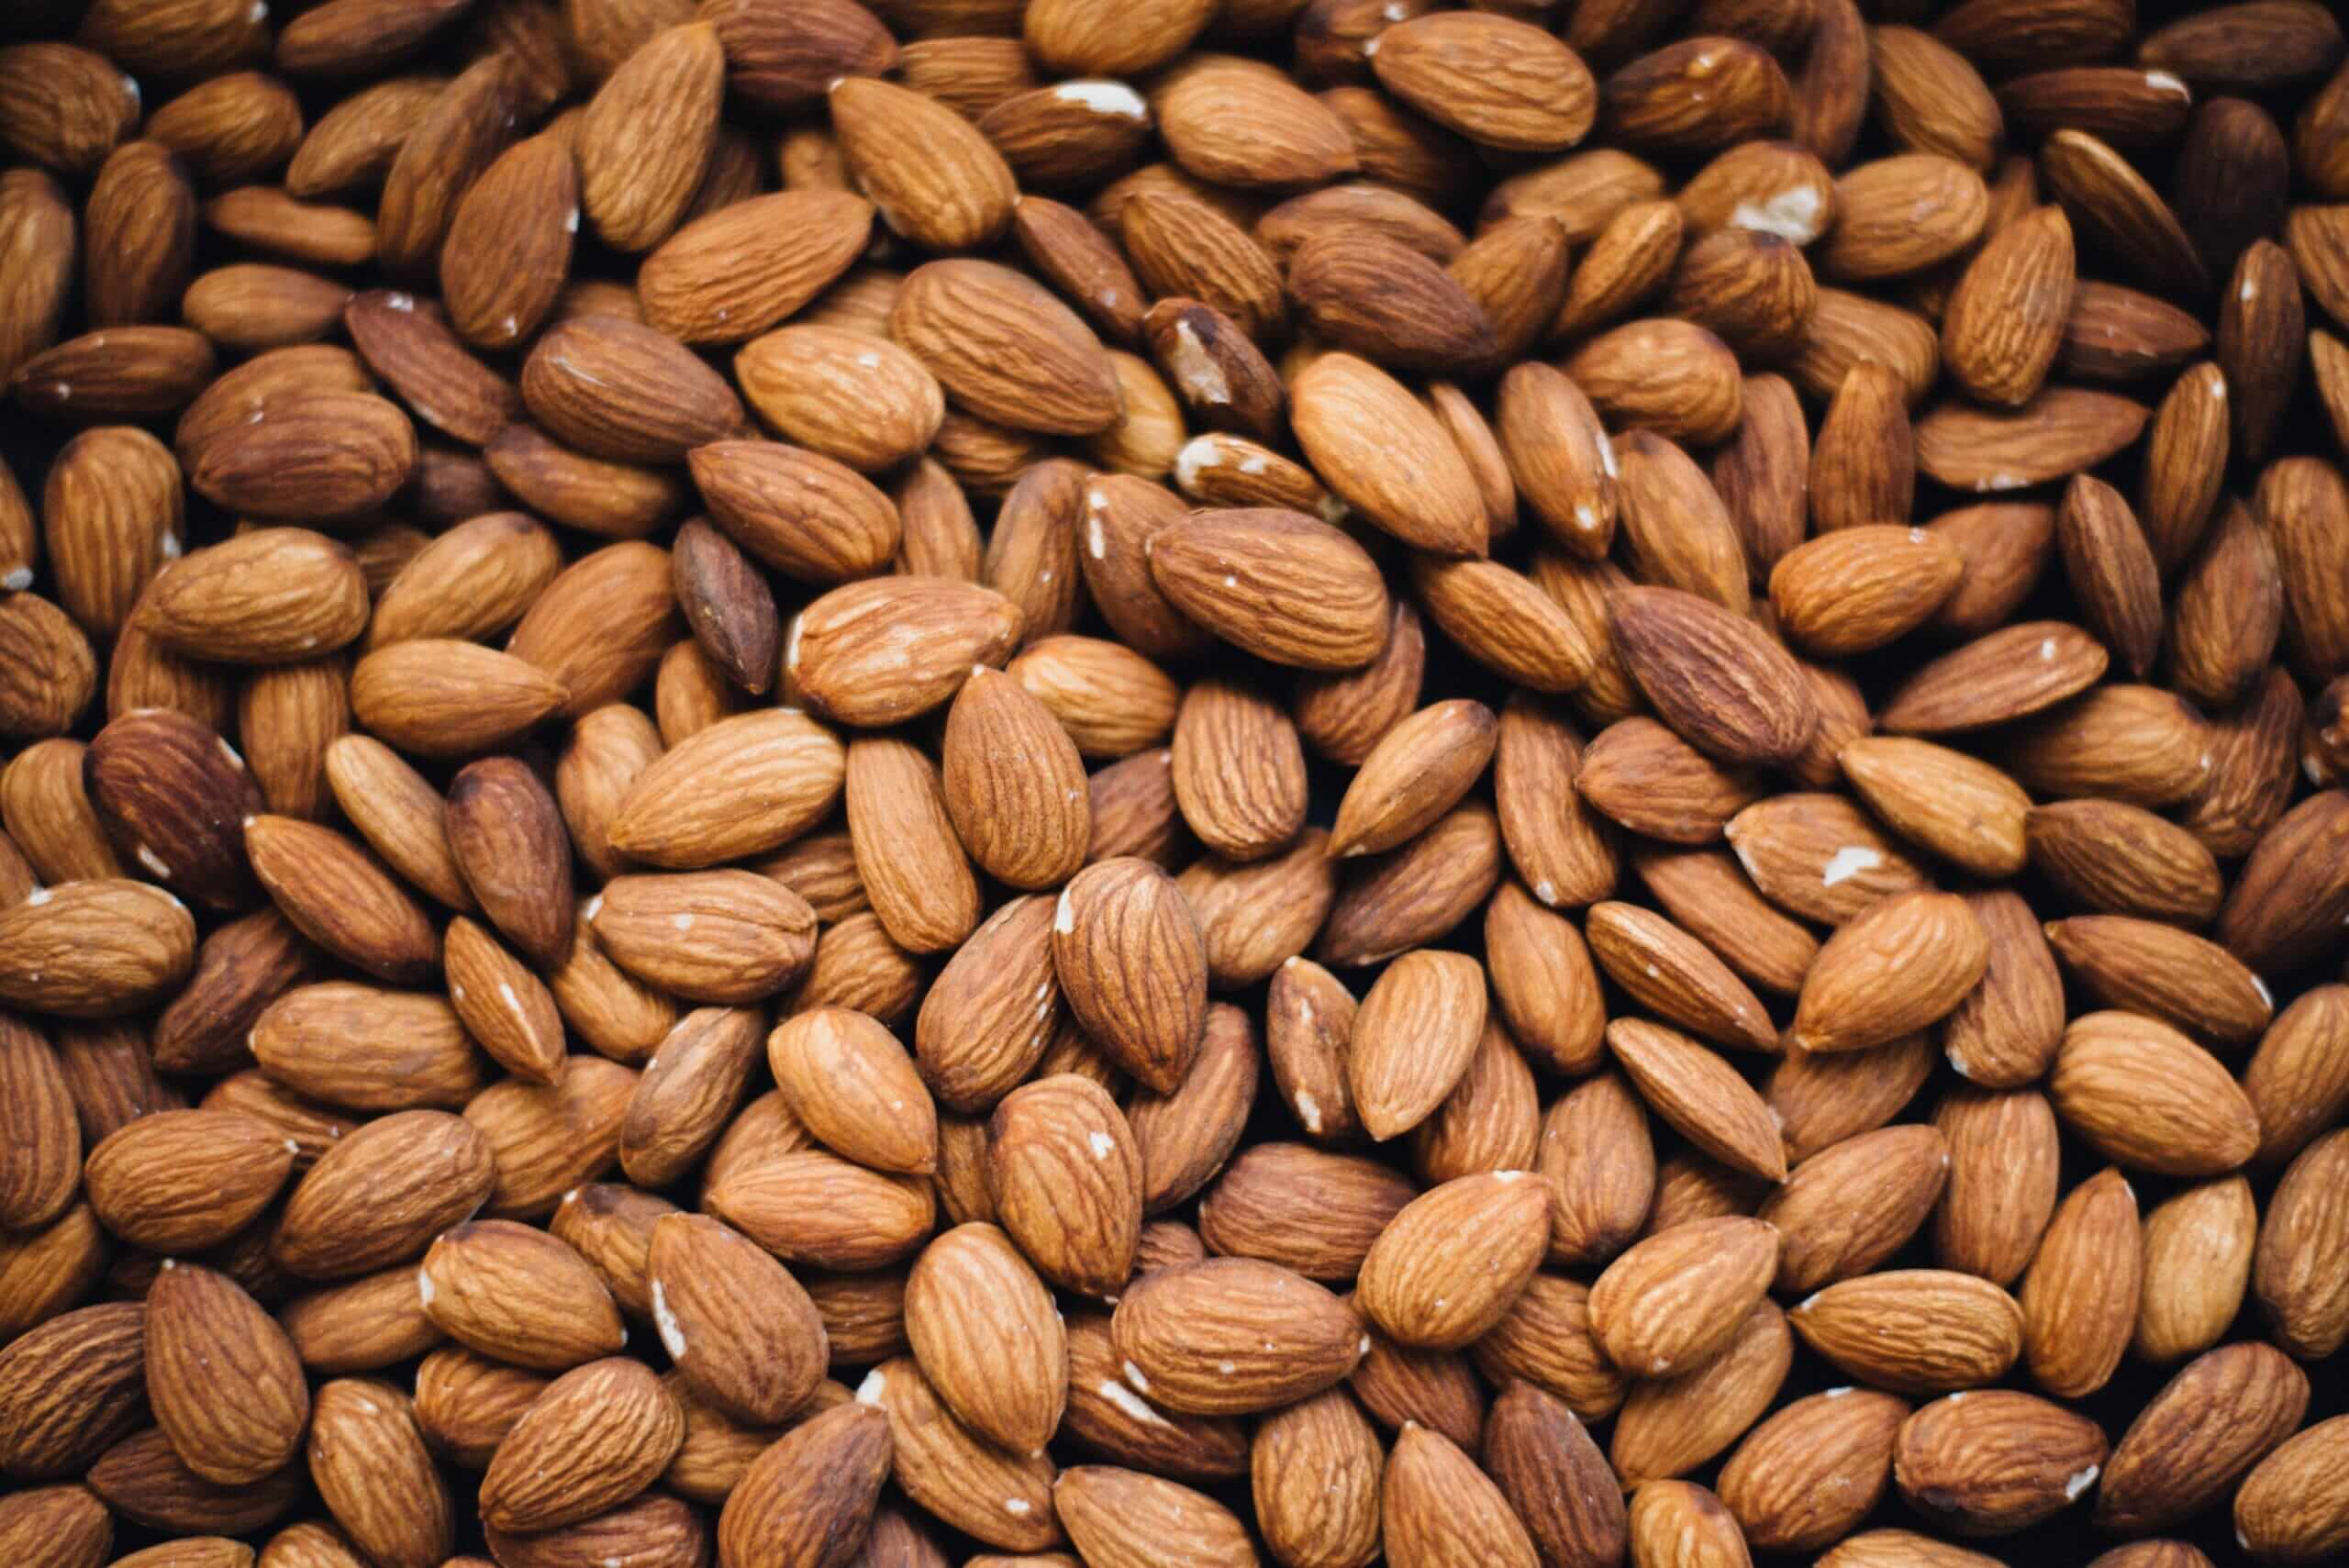 A whole lot of almonds